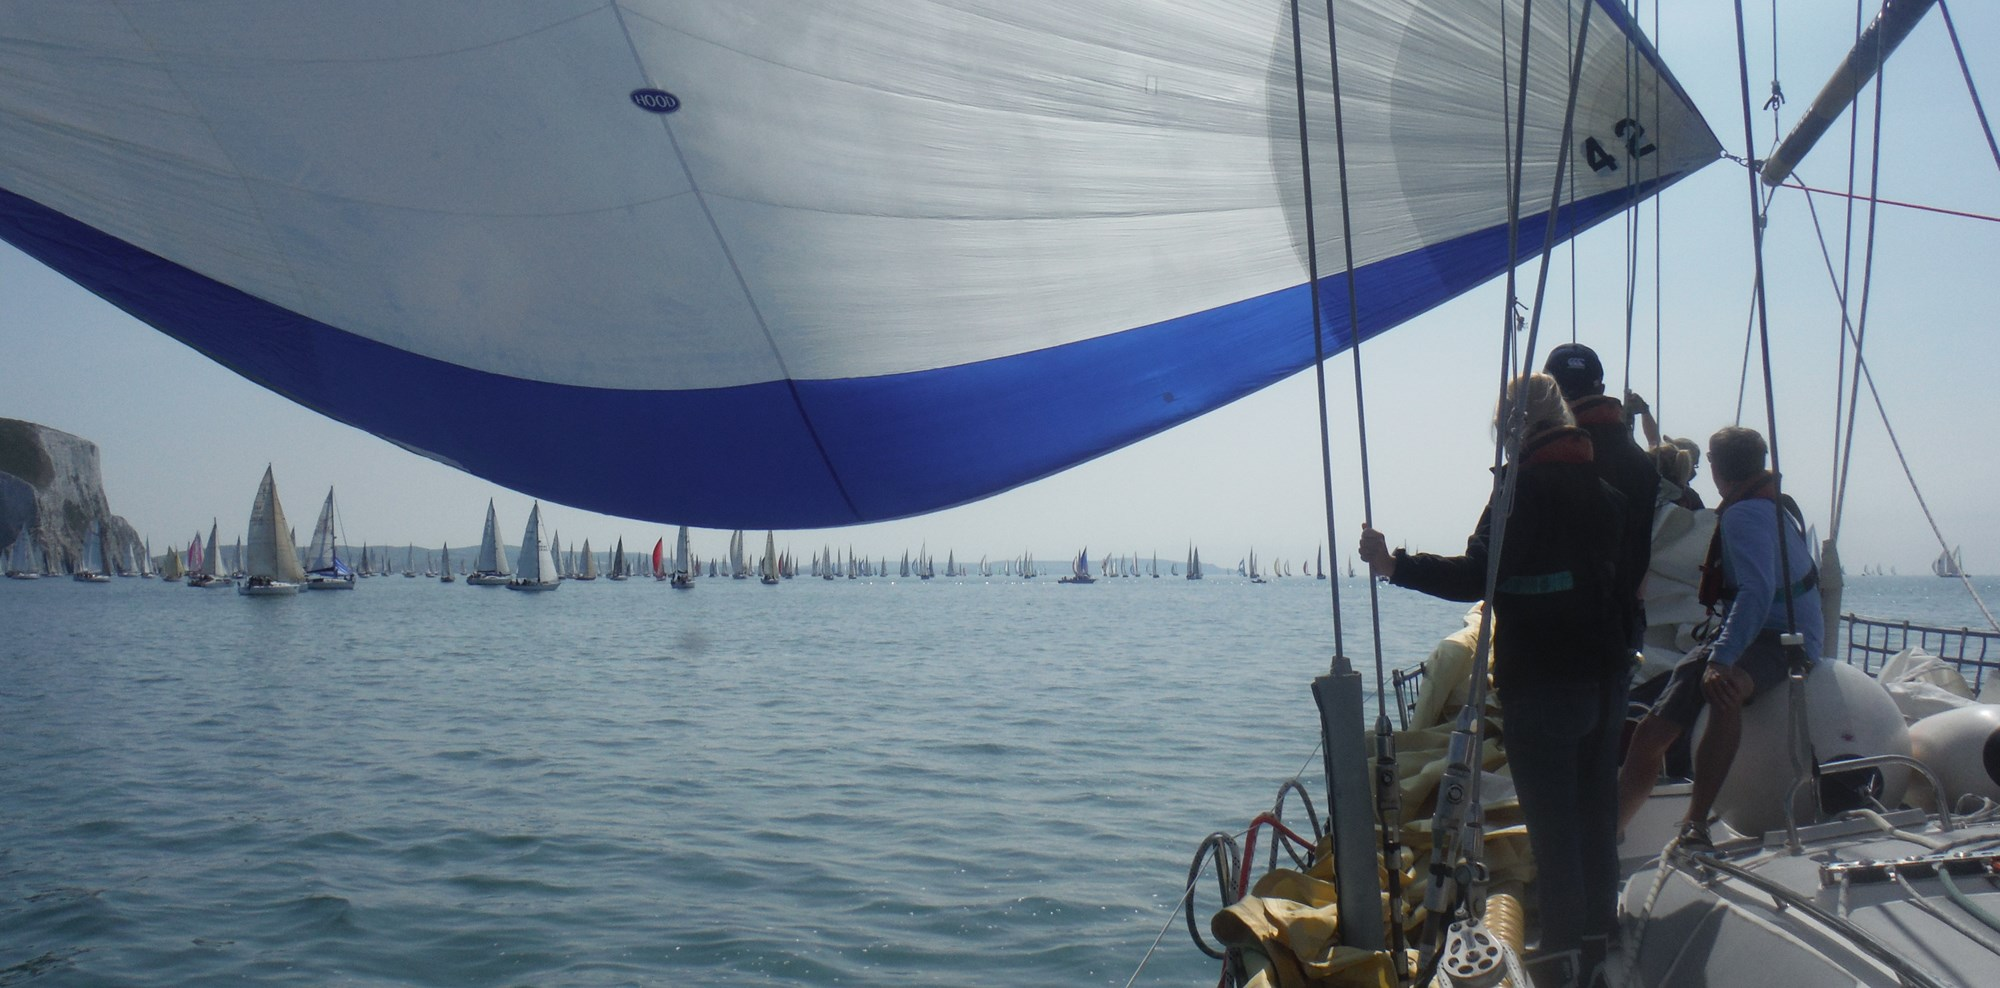 RTIR Sails under the spinnaker